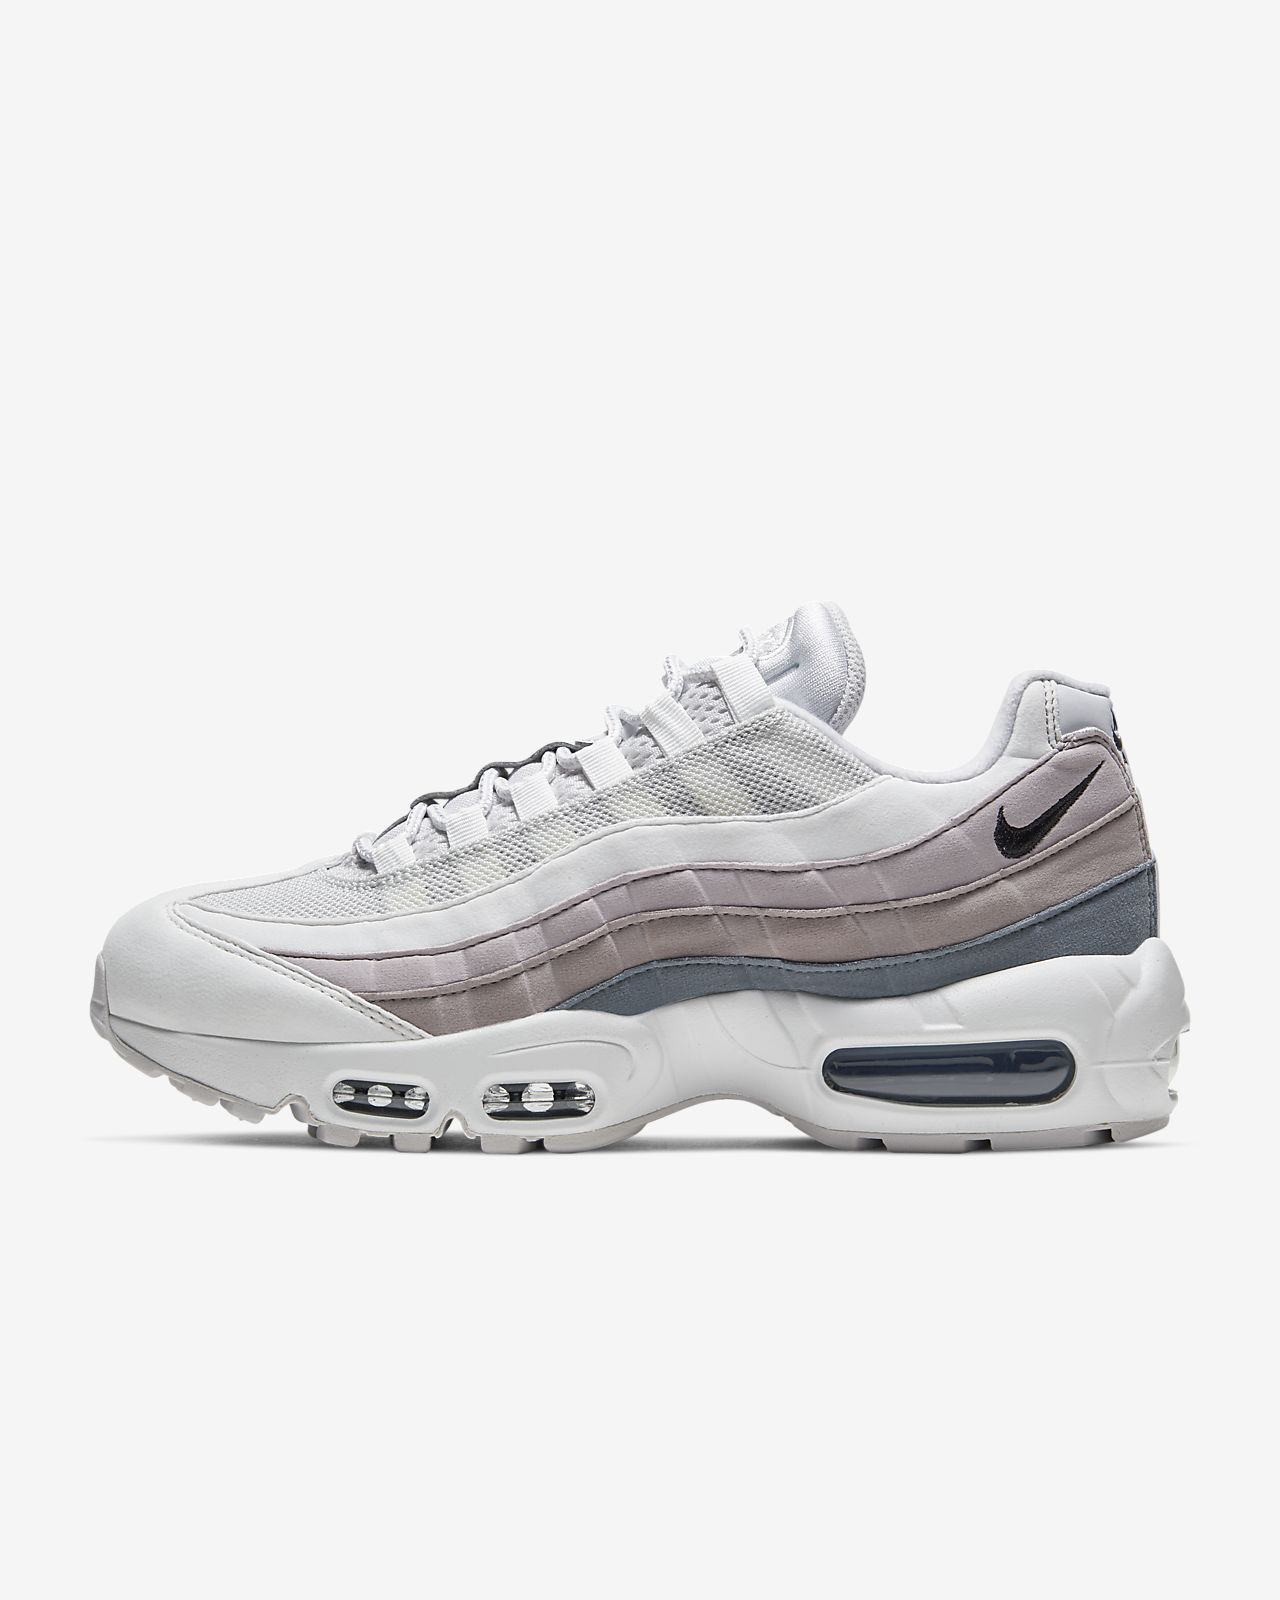 official photos 83b93 3eef5 ... Nike Air Max 95 Women s Shoe